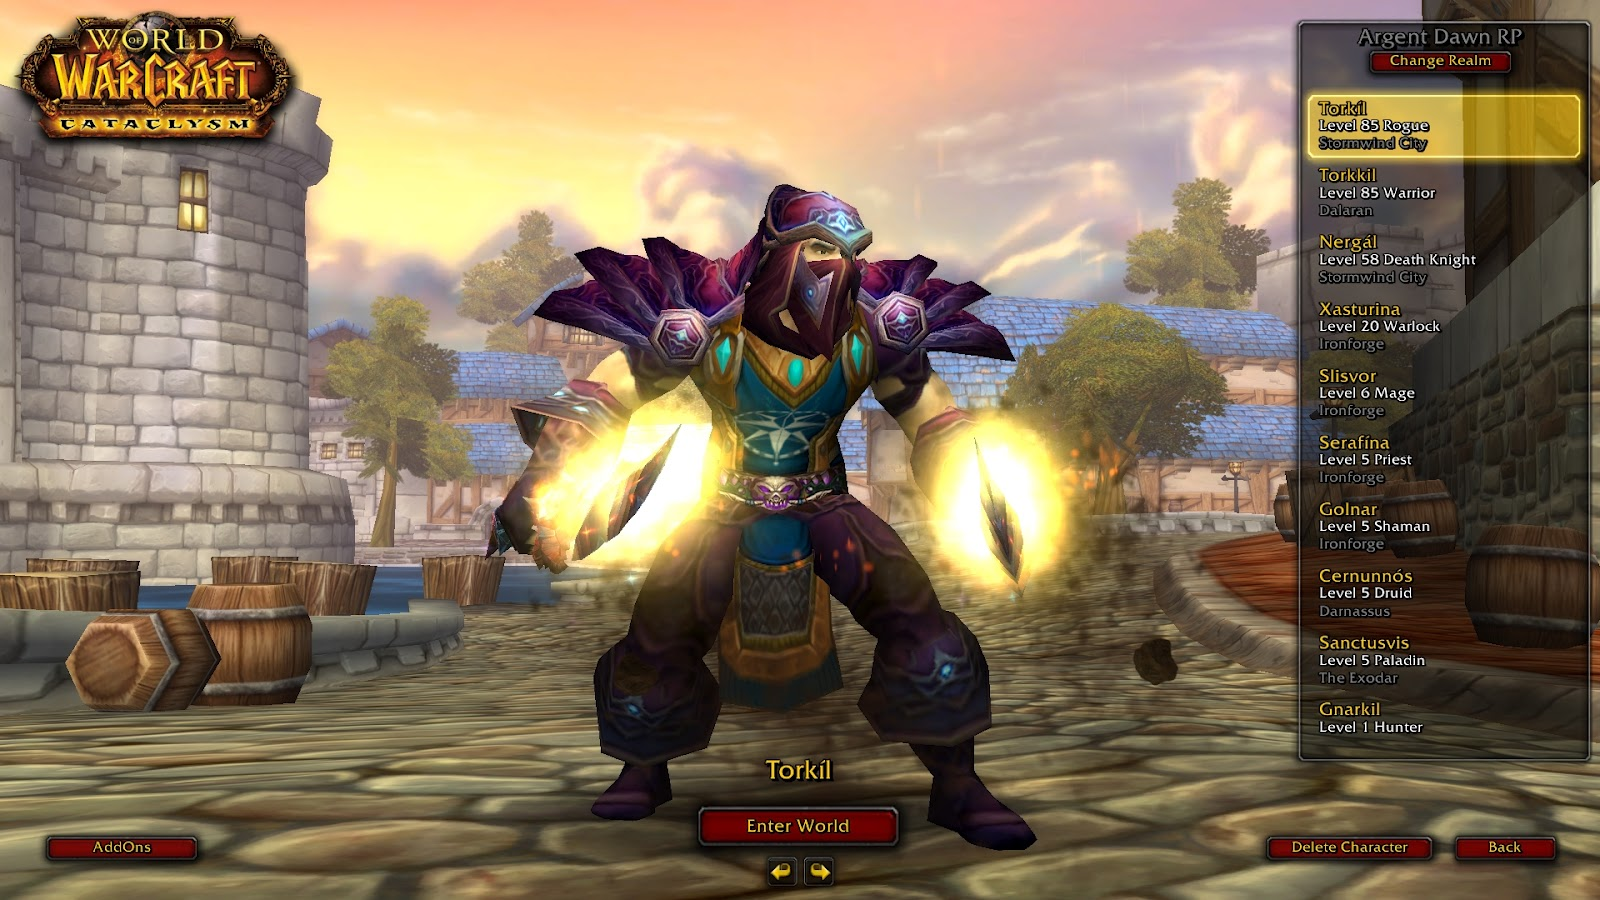 Irrationally Irritated How Blizzard Ruined World Of Warcraft Part 1